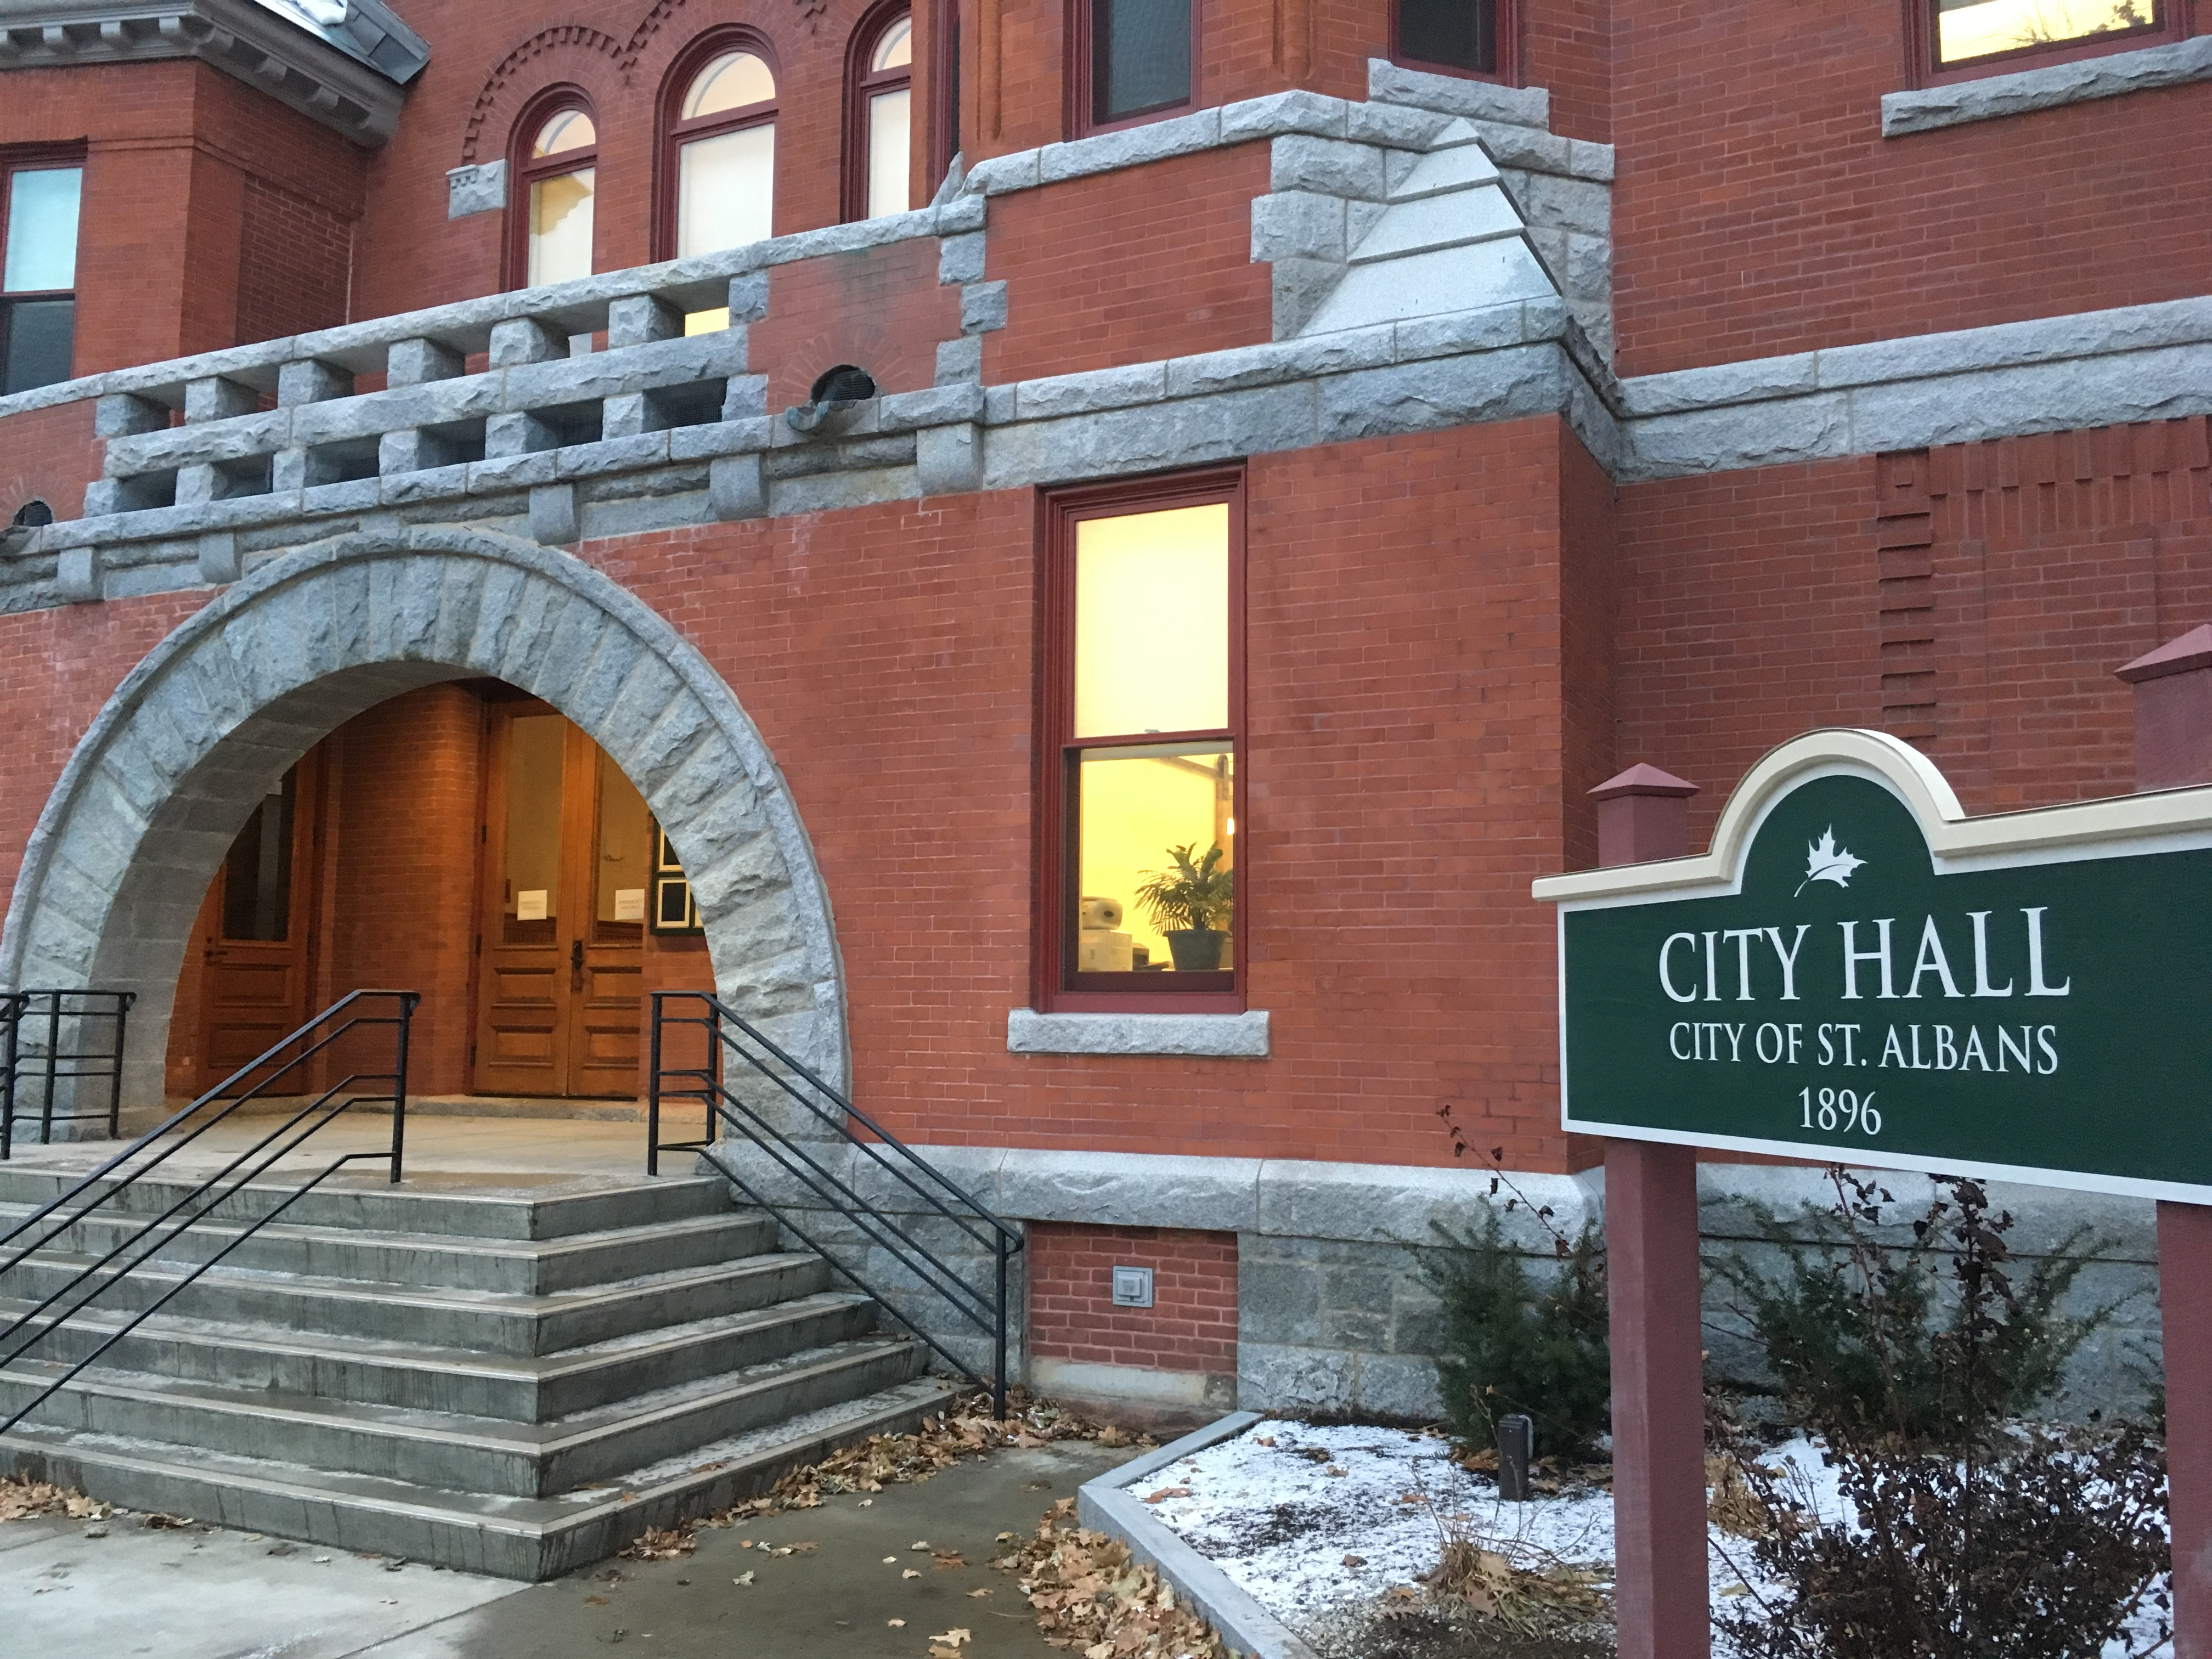 Meeting - Albans Of City Dates Saint Boards amp;